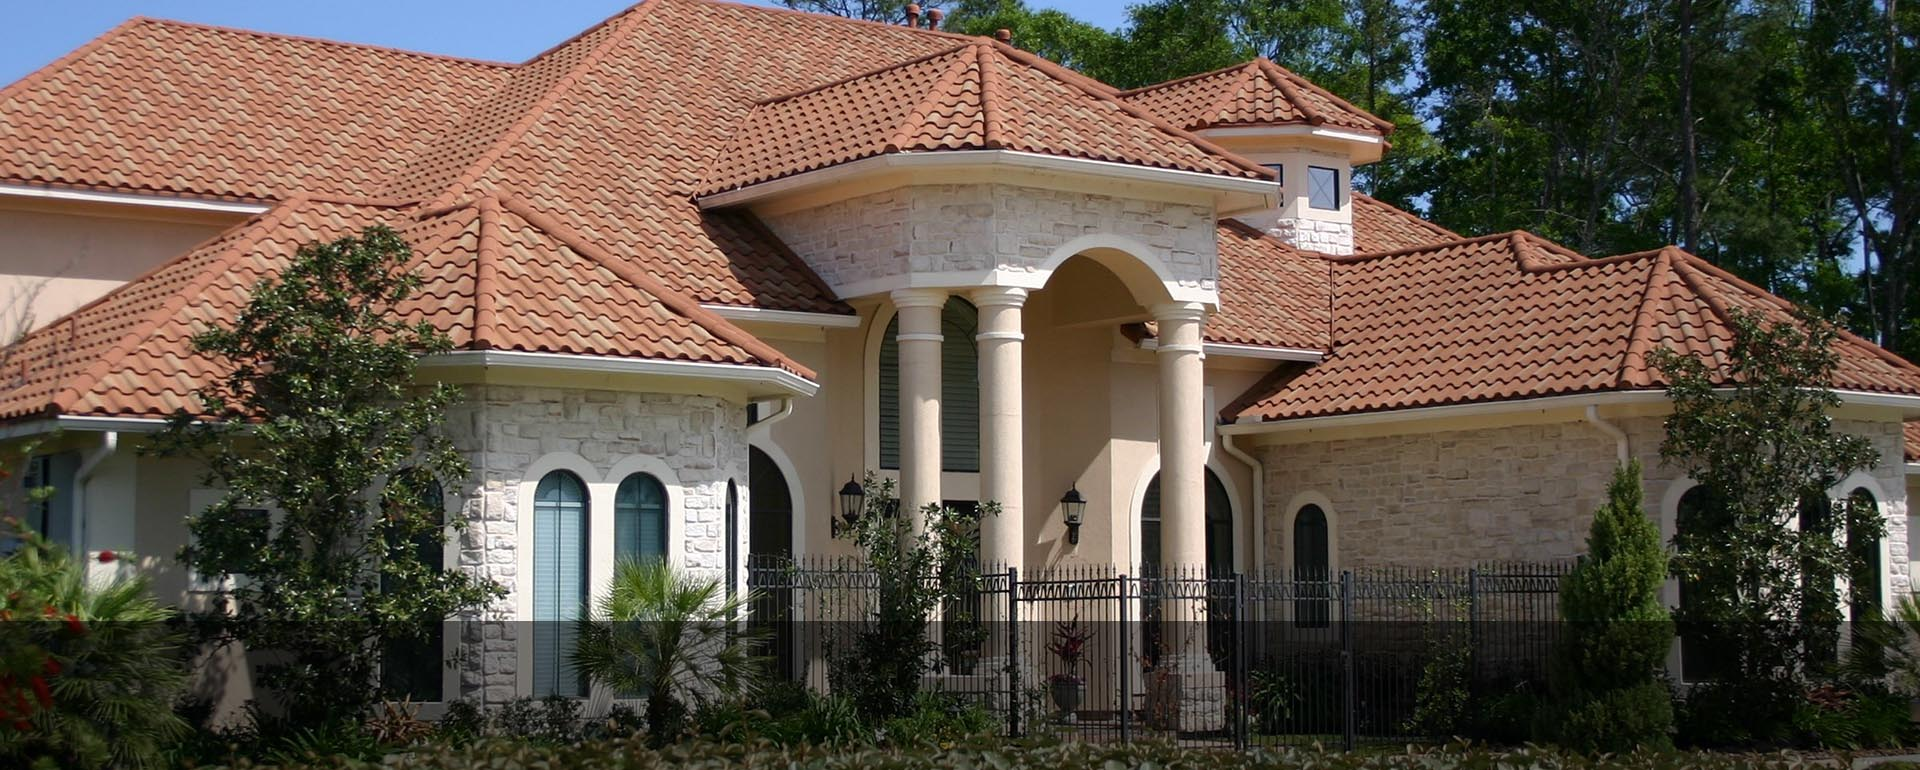 DECRA® STONE-COATED STEEL ROOFS BUILT TO LAST